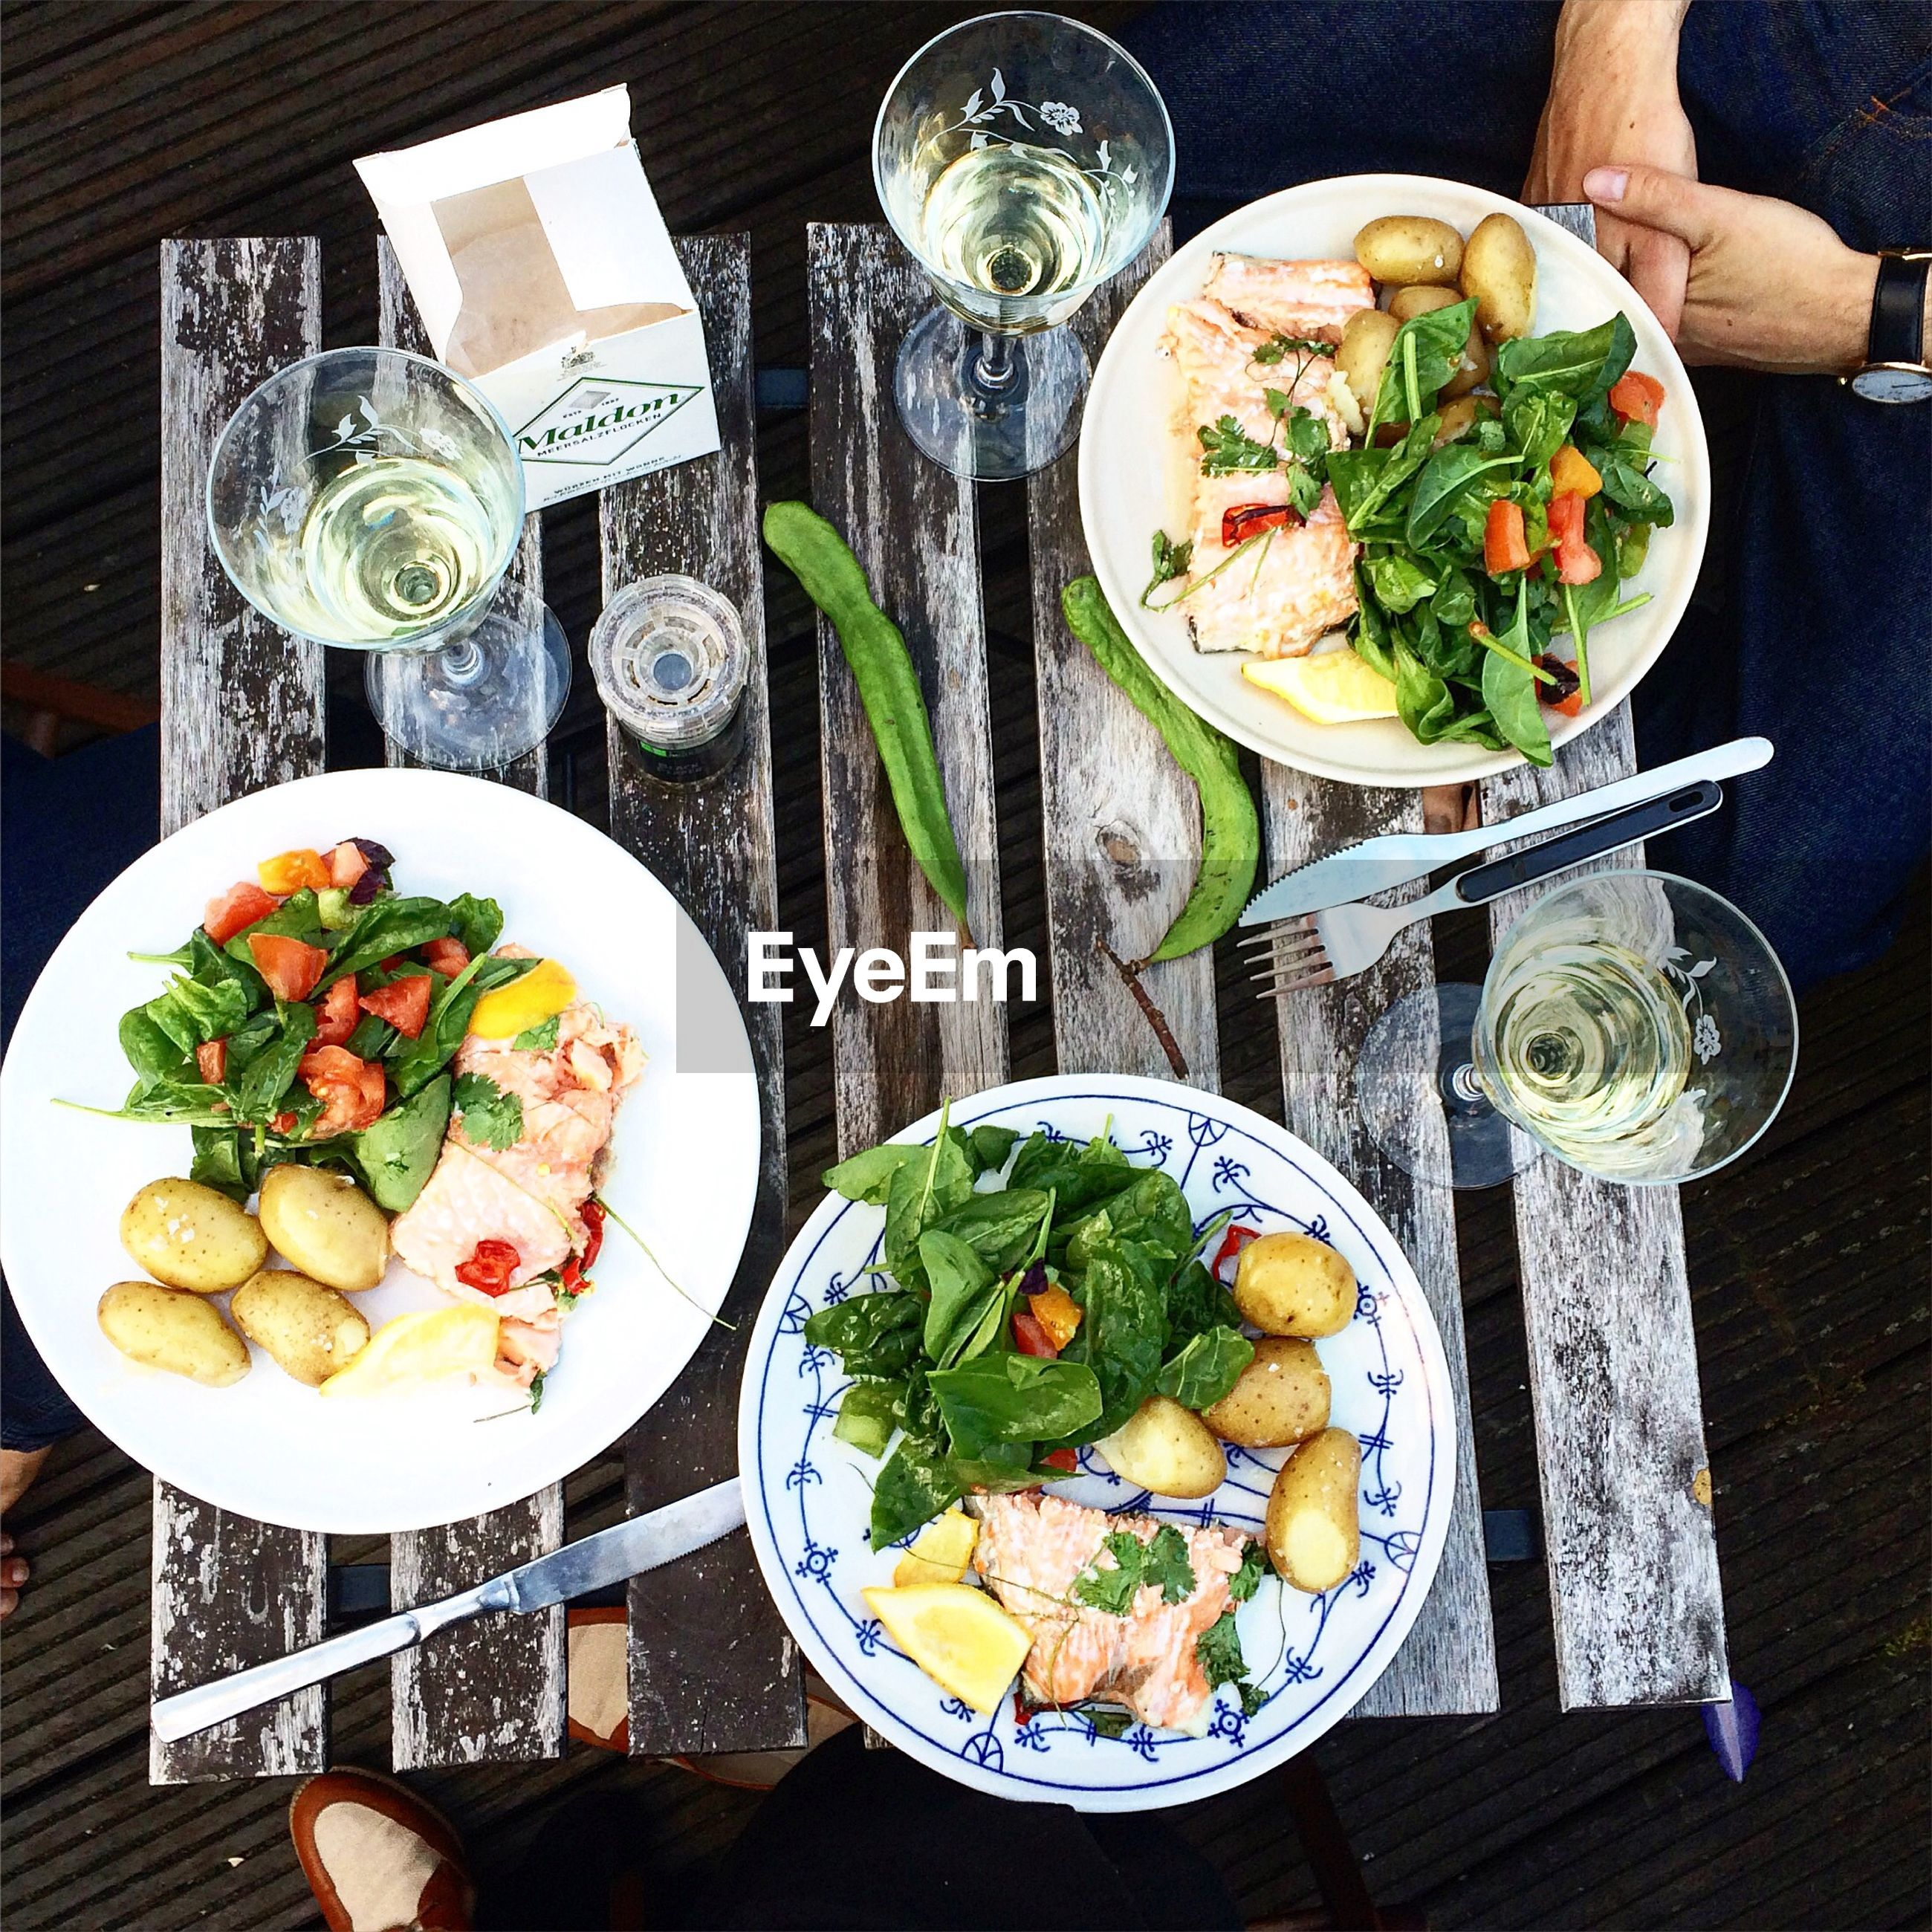 food and drink, table, indoors, food, freshness, plate, ready-to-eat, still life, healthy eating, serving size, meal, drinking glass, drink, high angle view, bowl, salad, fork, vegetable, served, restaurant